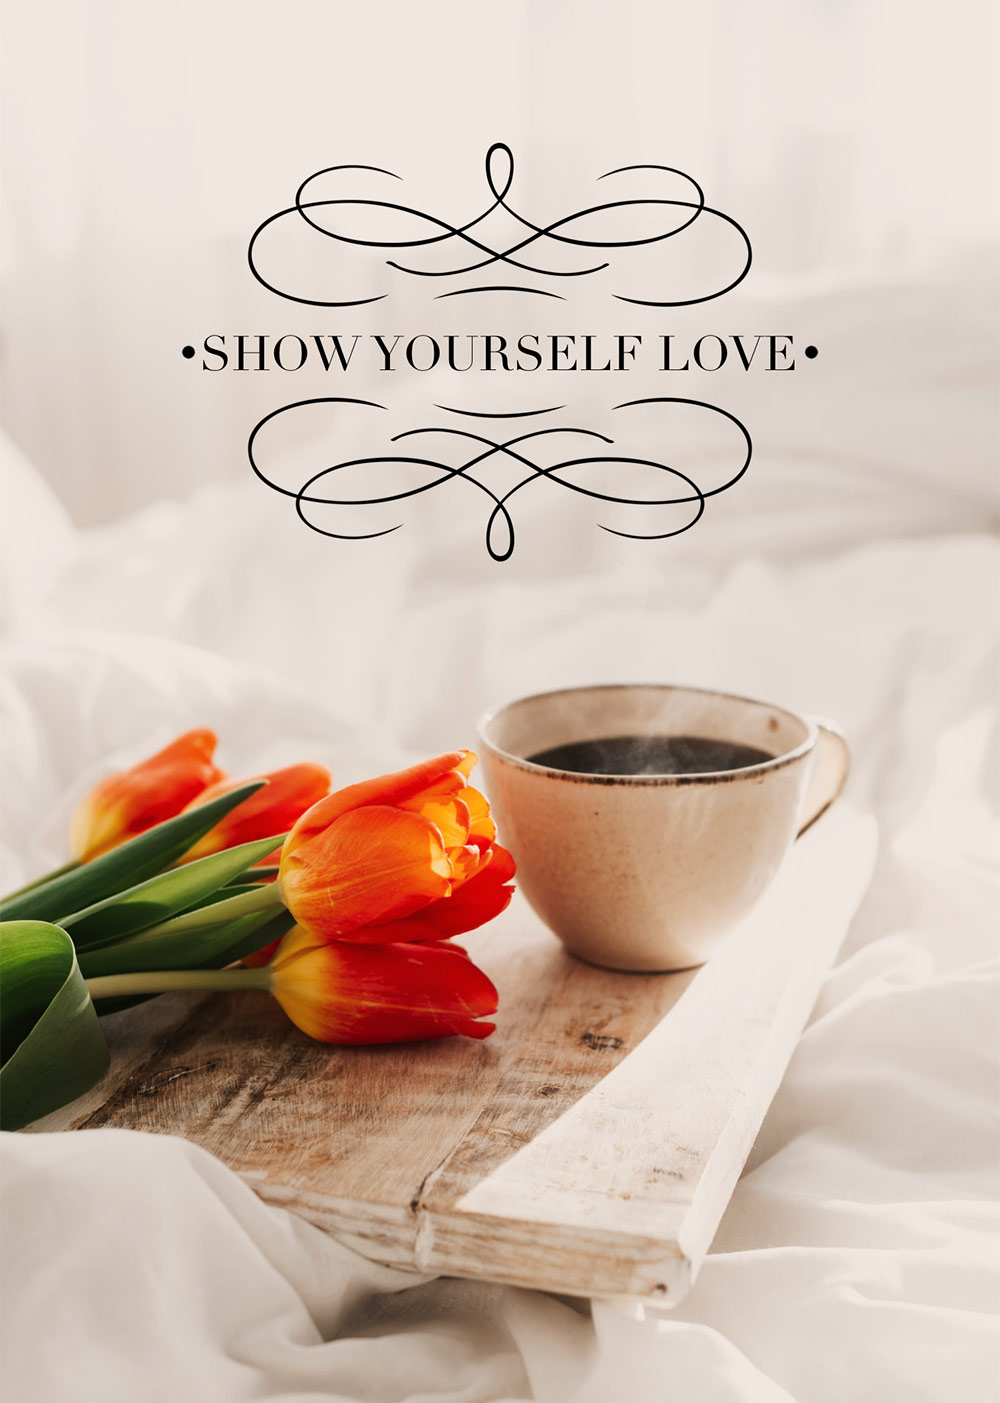 show yourself love monday poll top pic